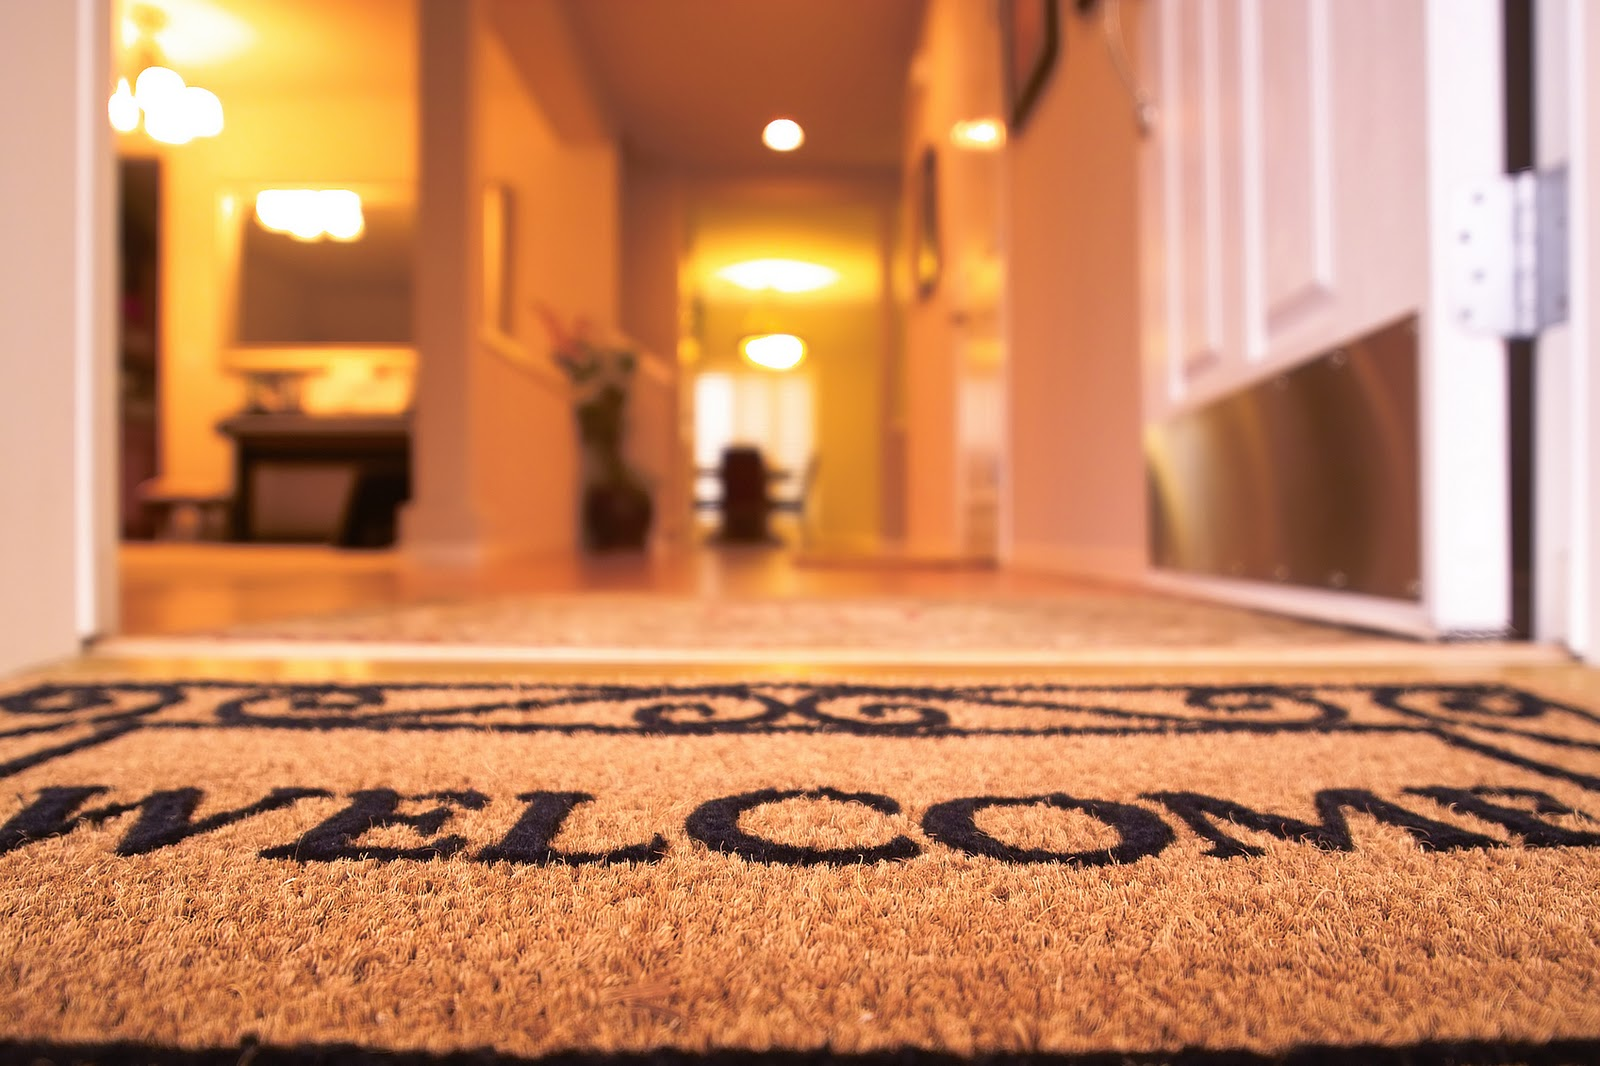 Nestio plans to make apartment hunting smart, social and easy